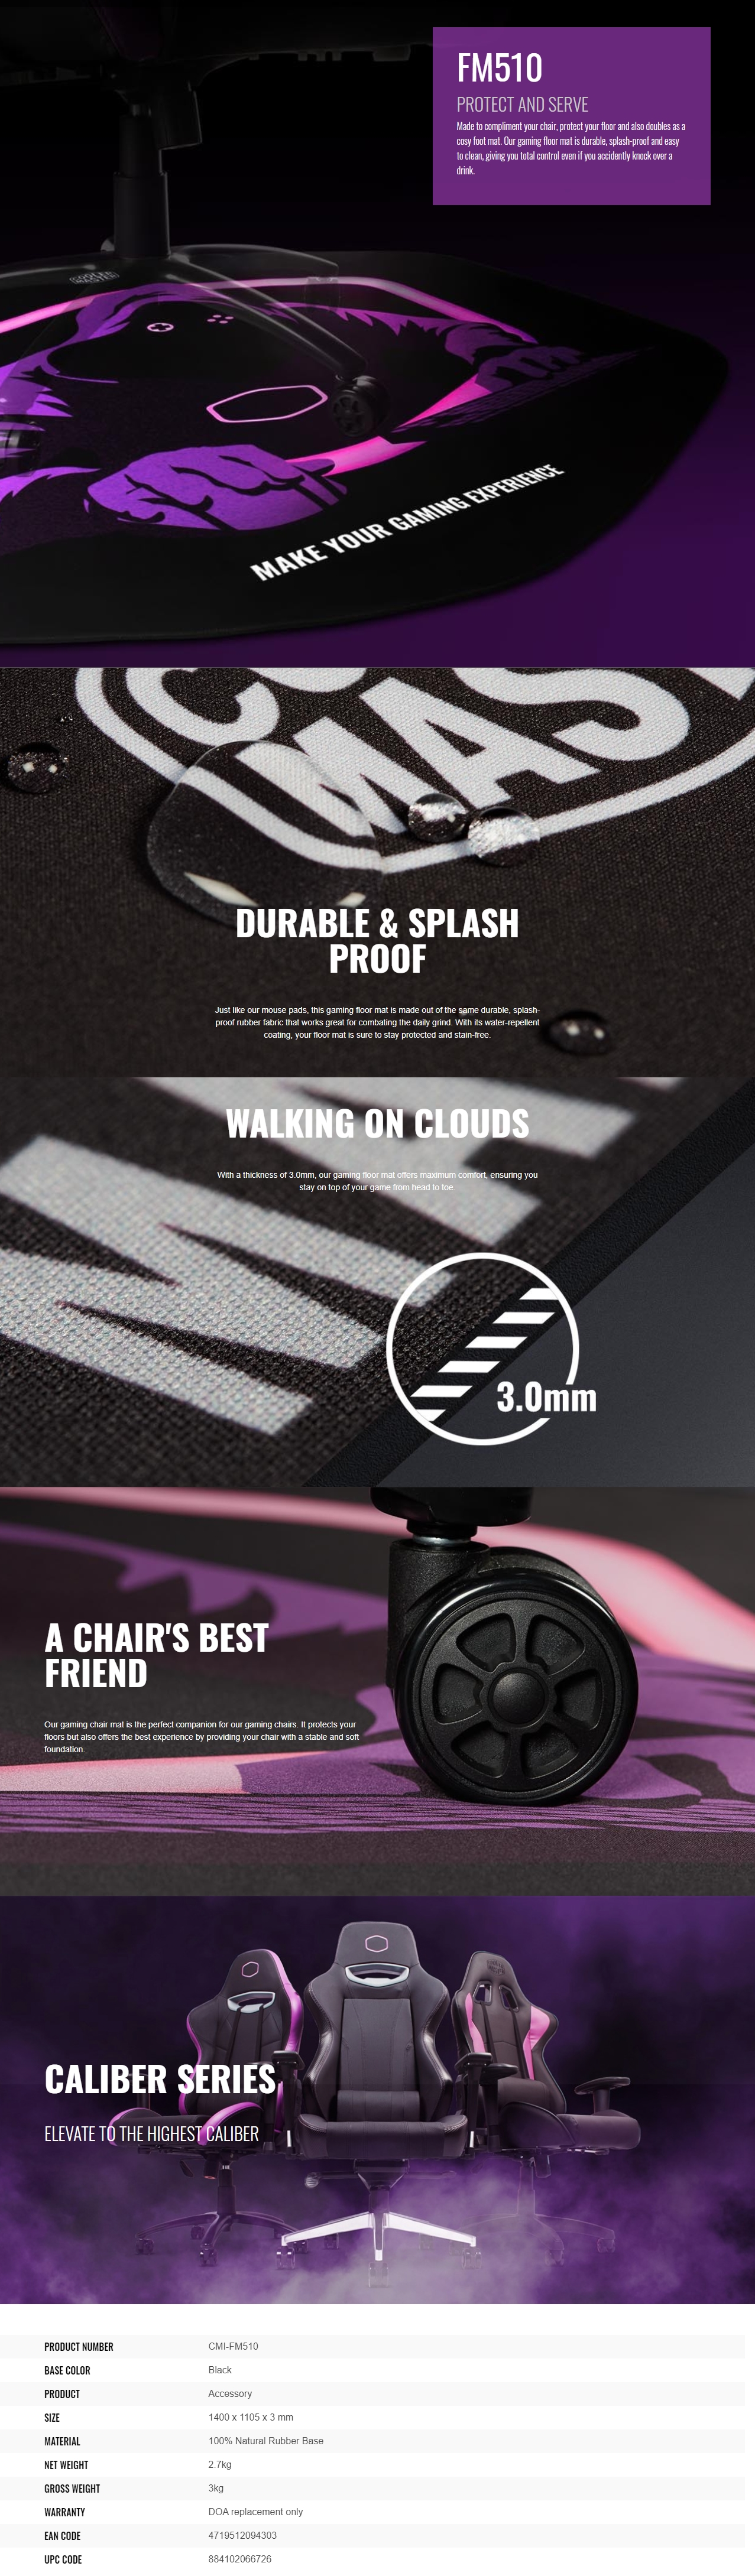 A large marketing image providing additional information about the product Cooler Master FM510 Gaming Floor Mat - Additional alt info not provided